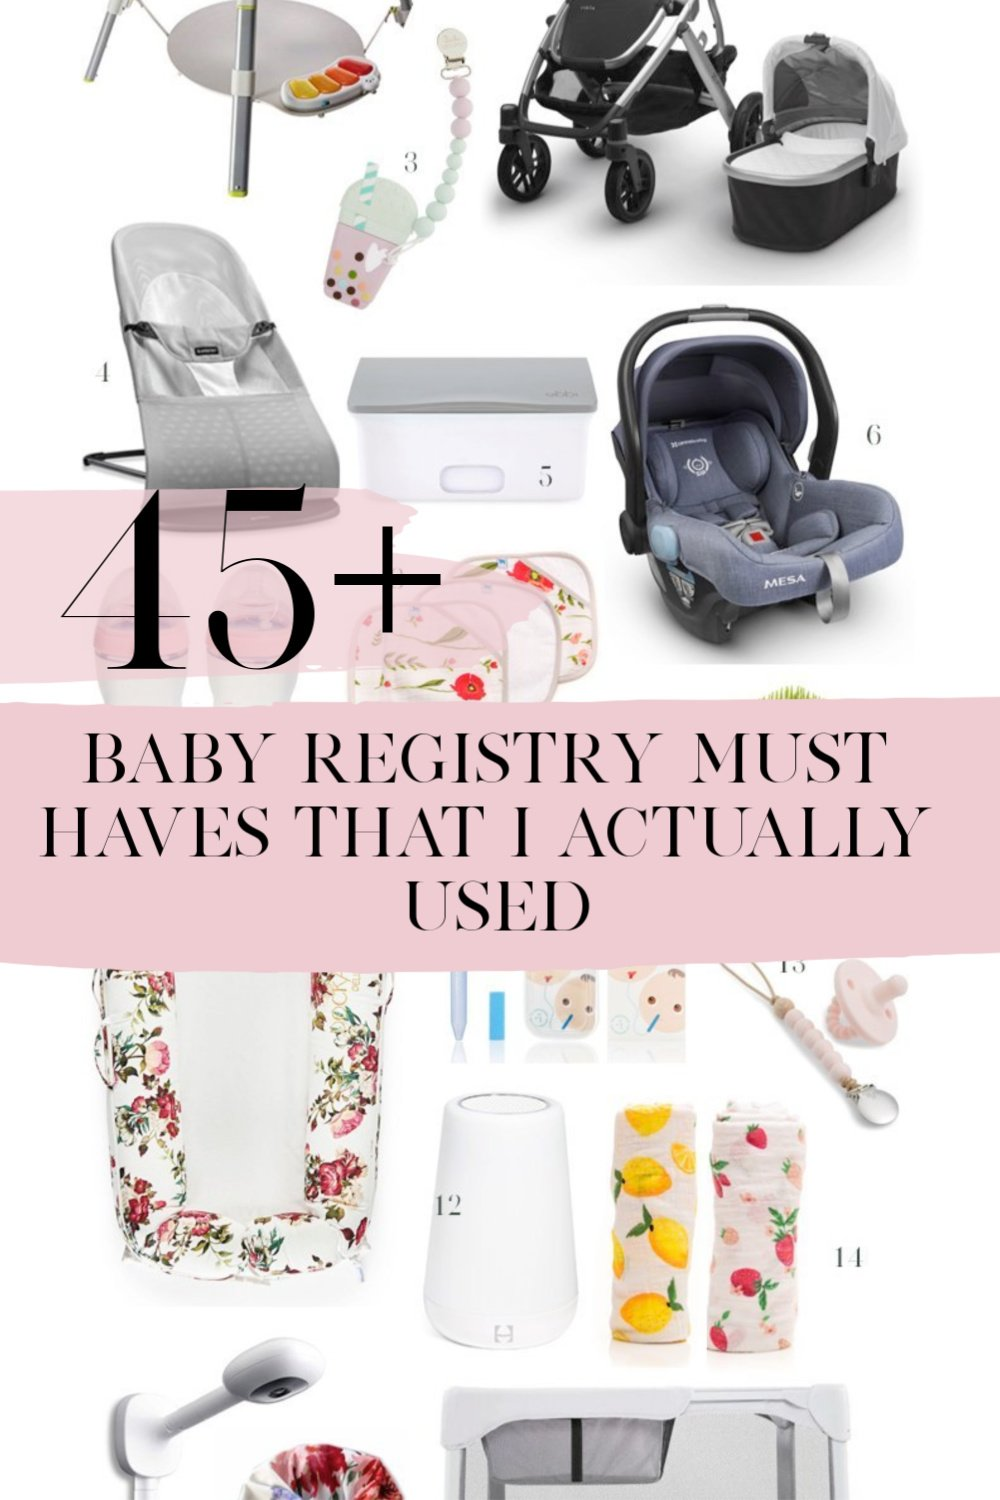 registry must haves for baby